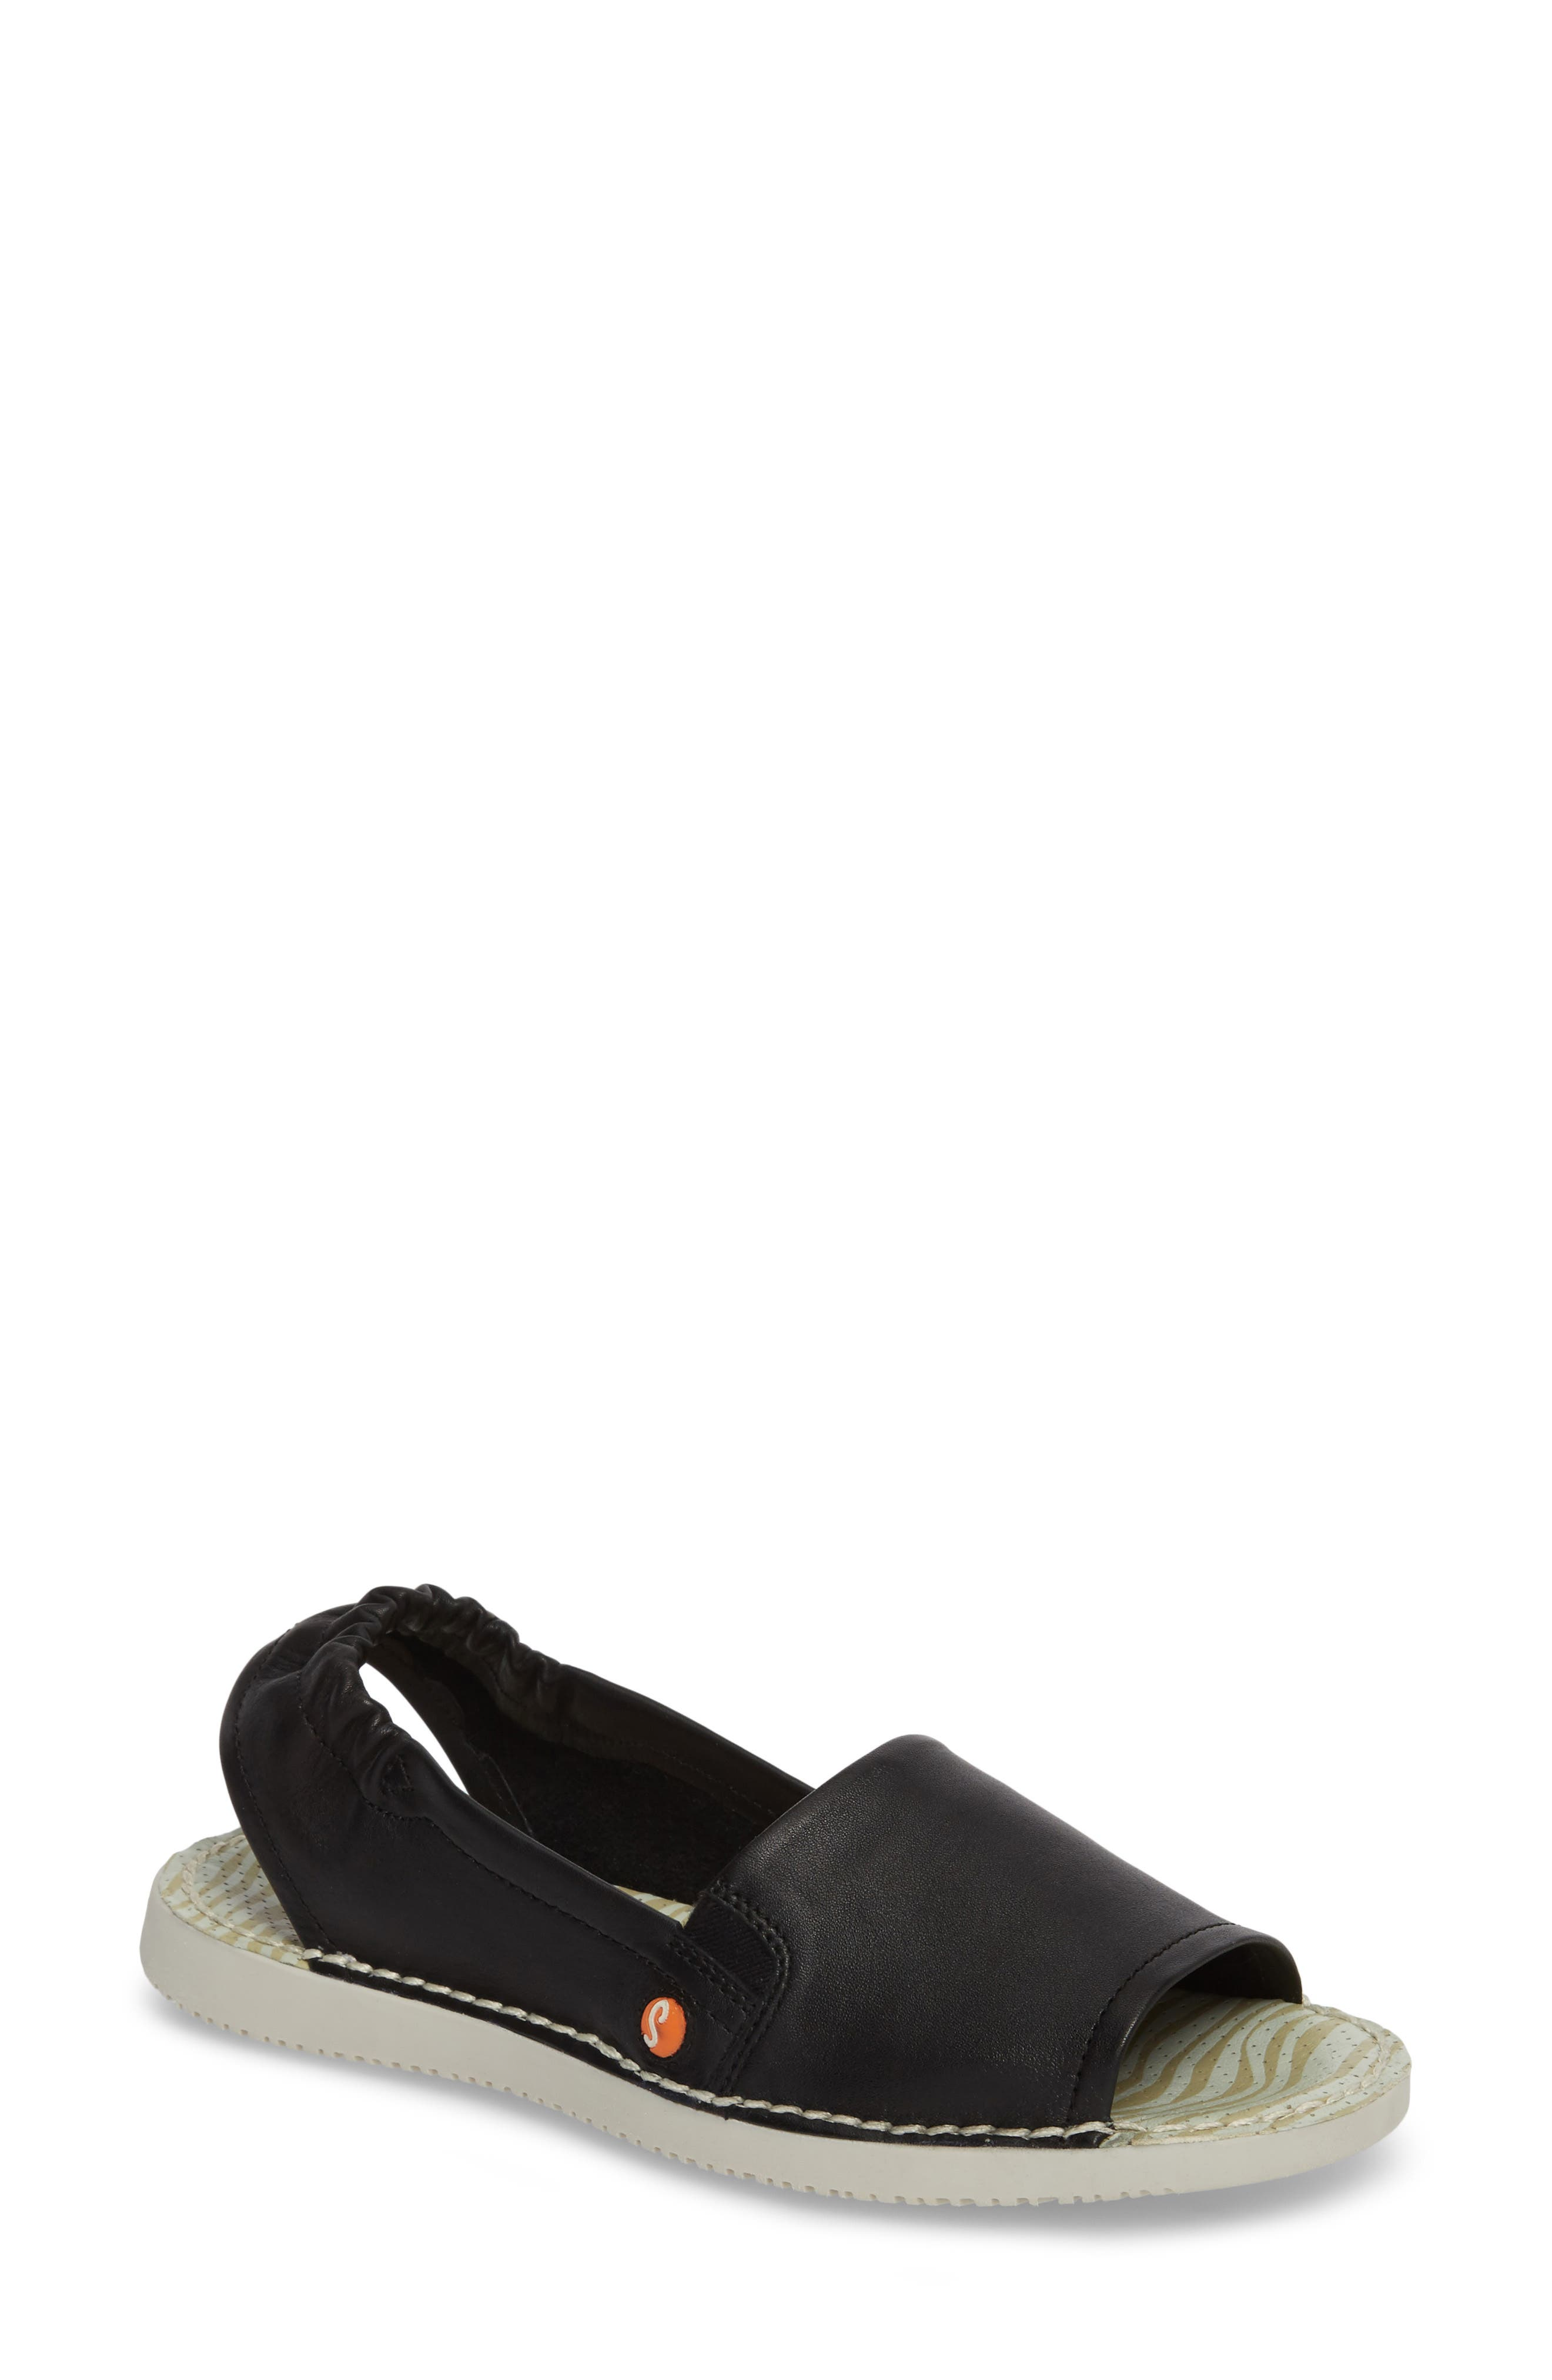 Softinos By Fly London Tee Flat Sandal - Black